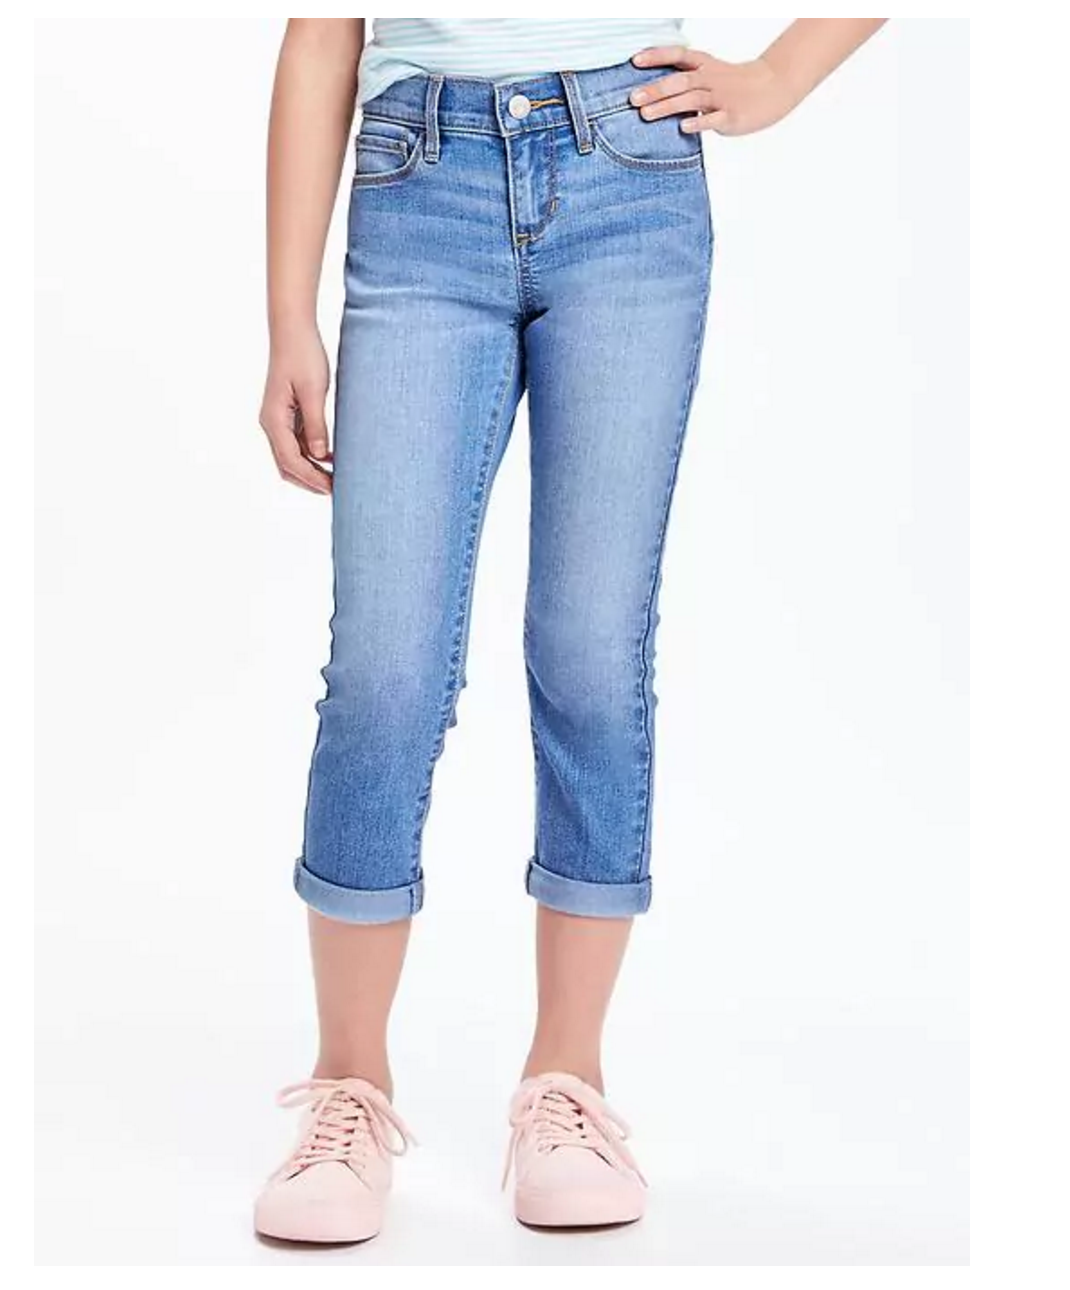 Tanger Outlets Old Navy Outlet girl's denim capri pants